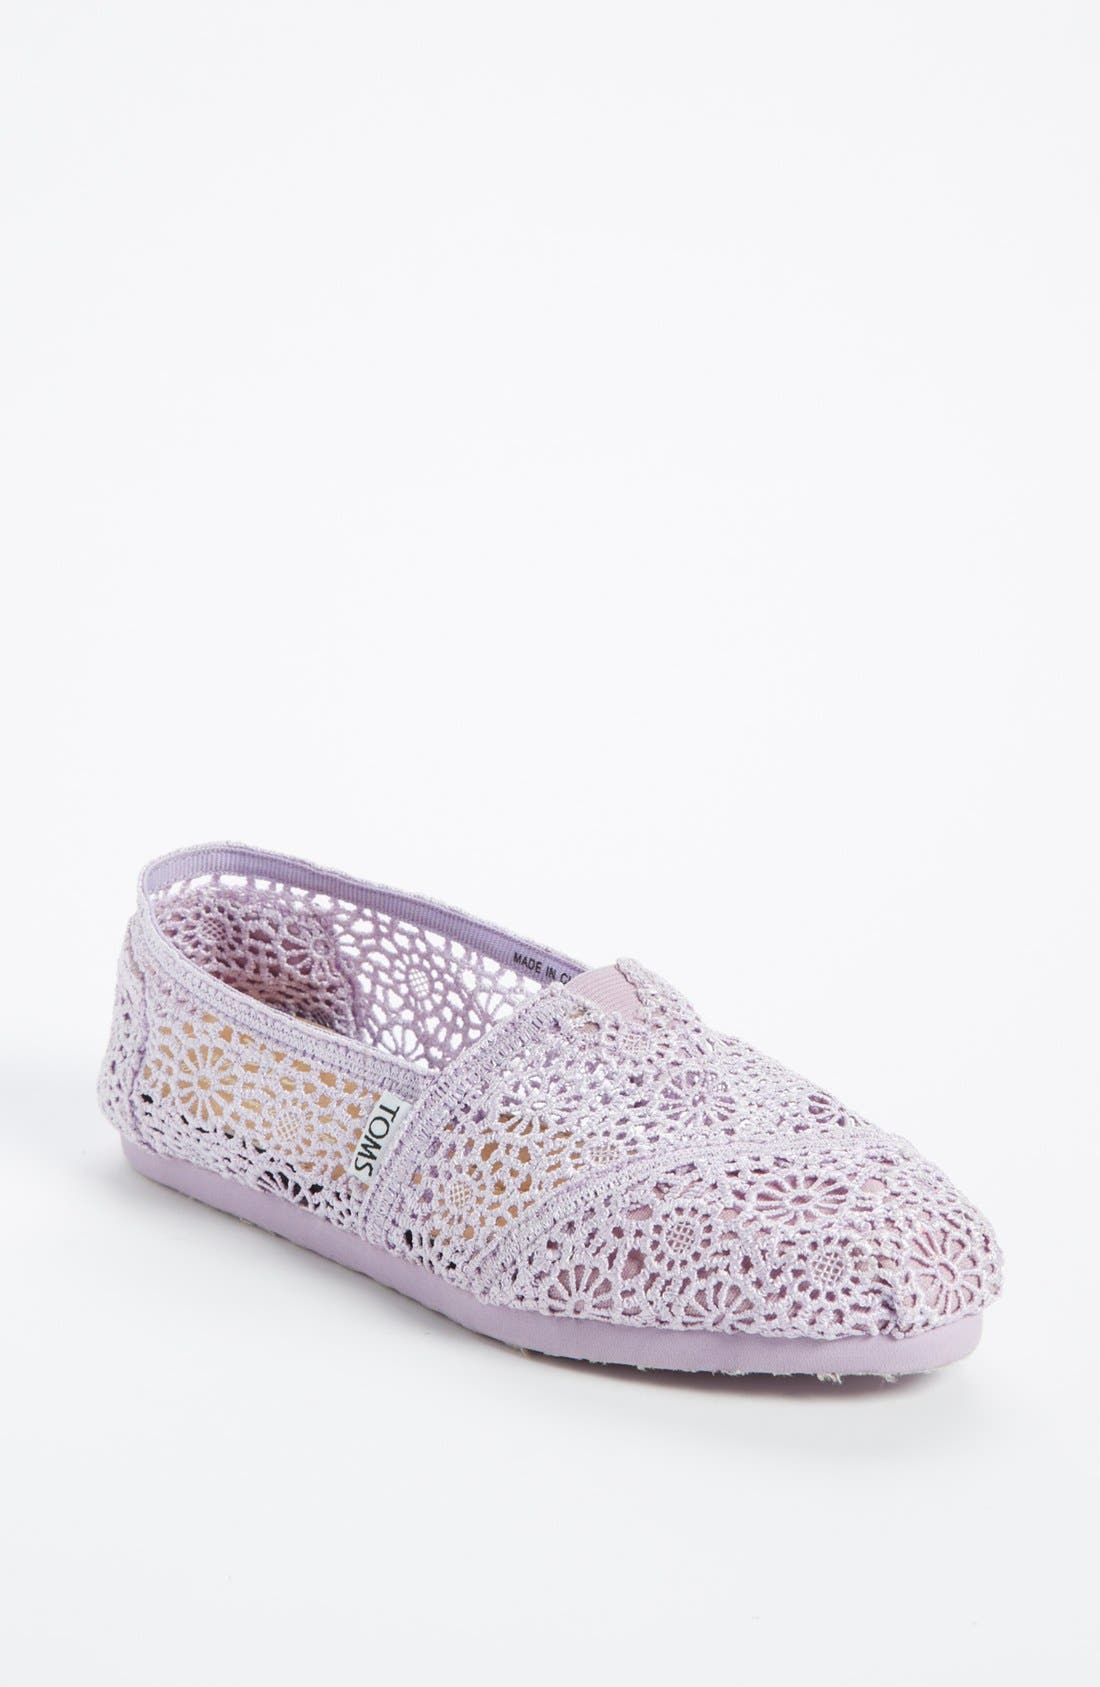 Main Image - TOMS 'Classic - Lilac Snow' Crochet Slip-On (Women)